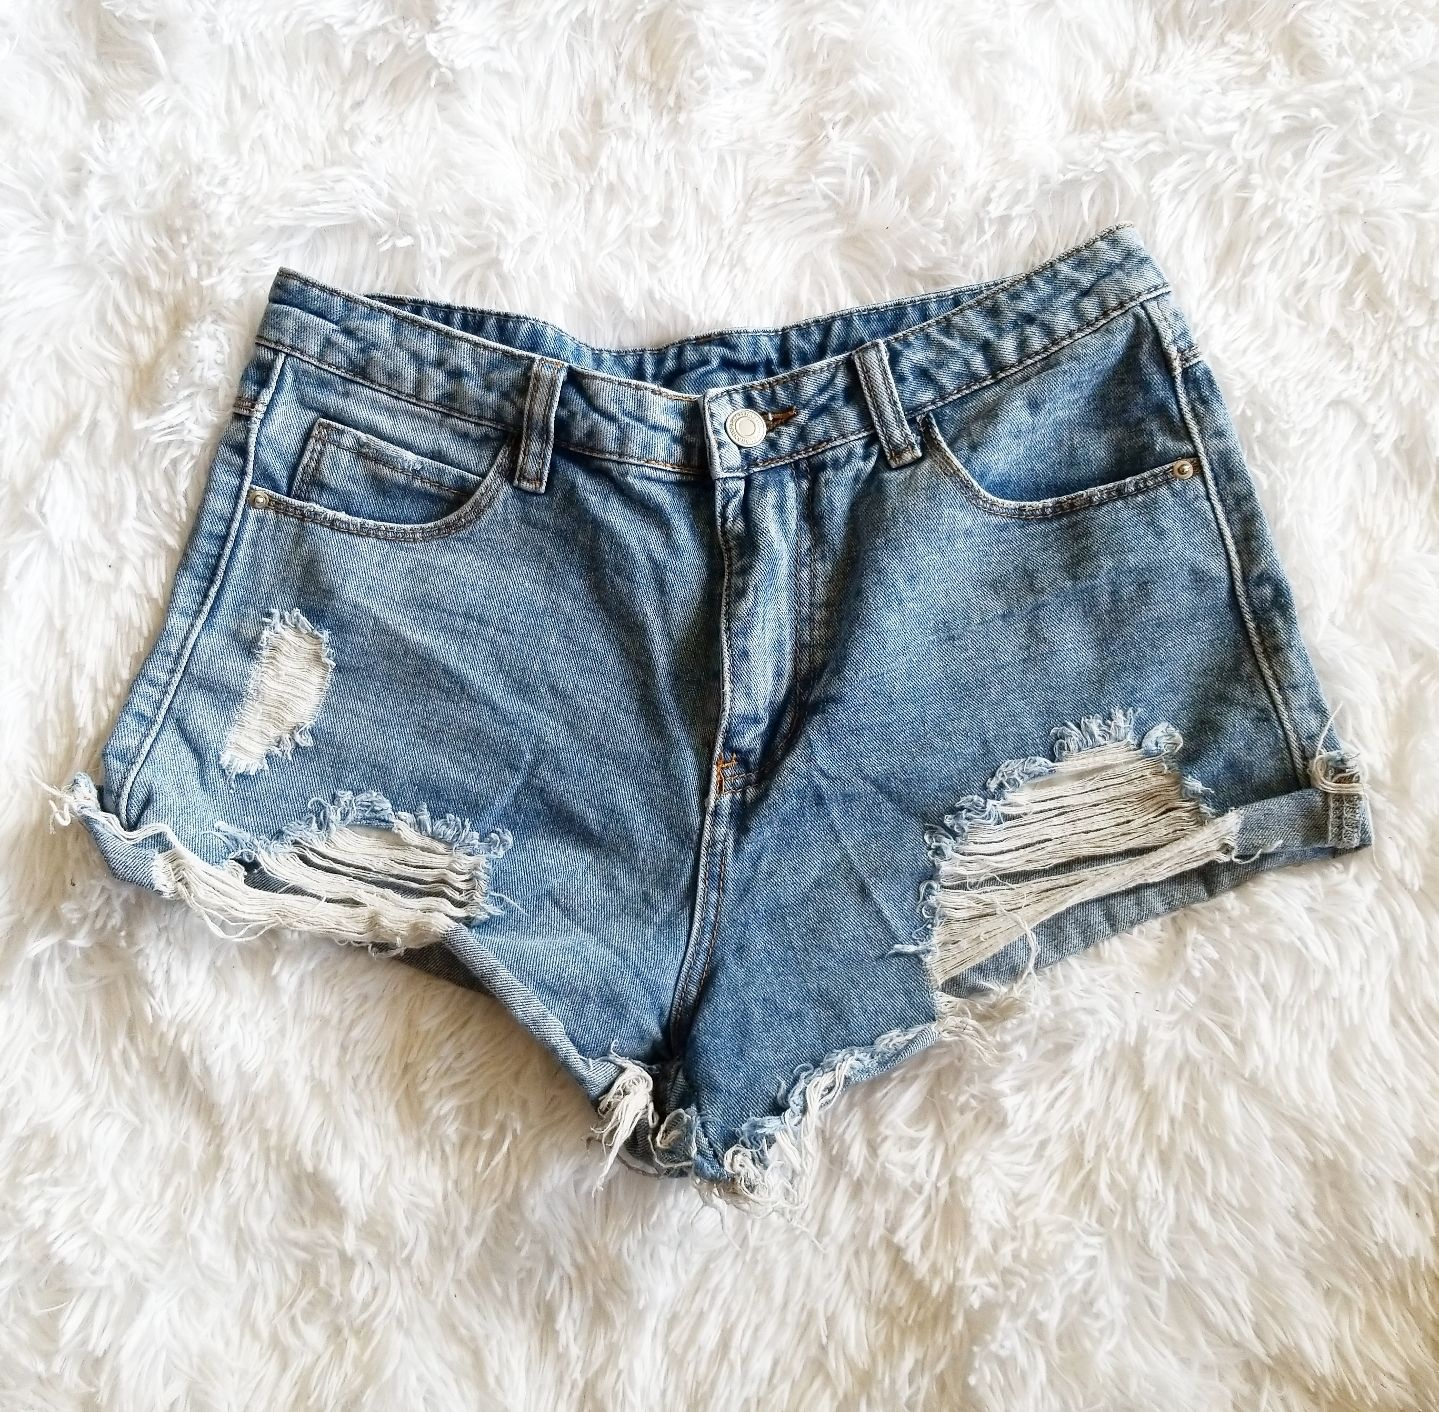 SHEIN High Waisted Ripped Shorts